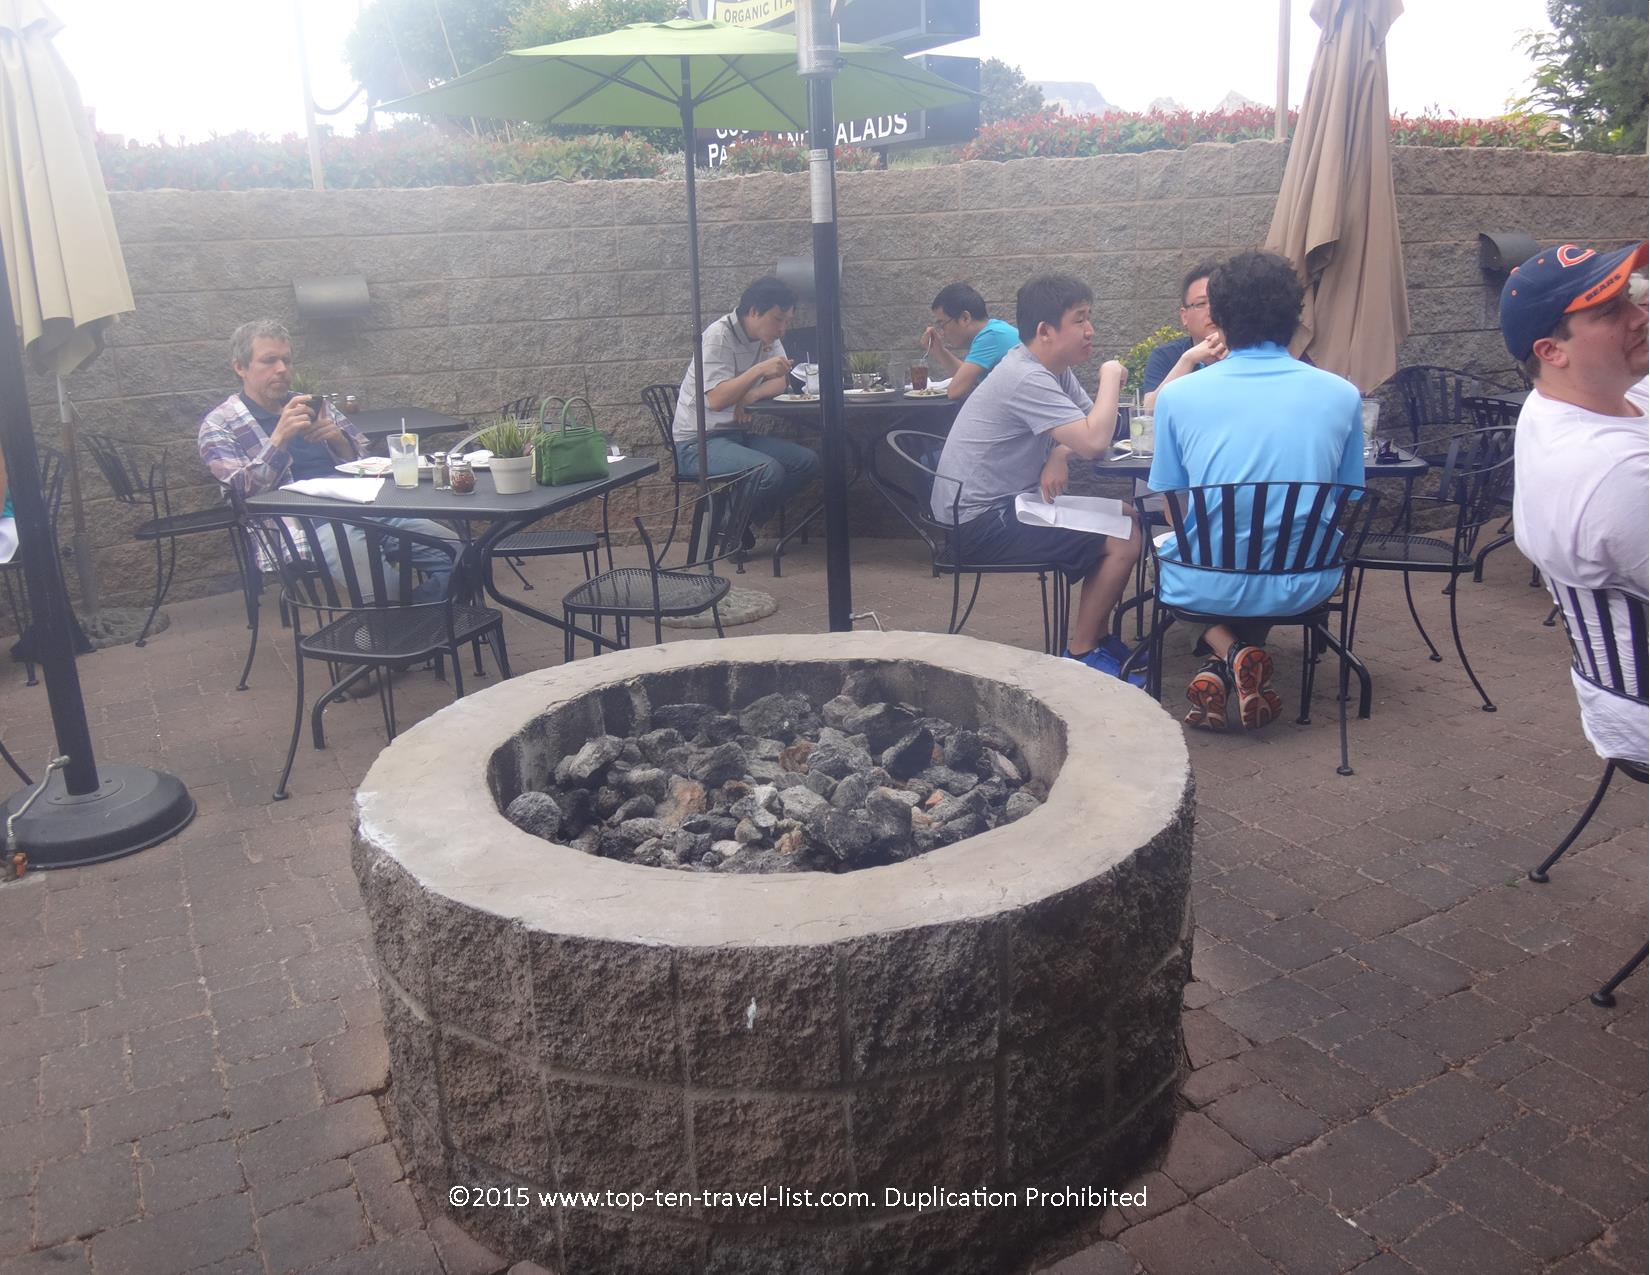 Outdoor dining at Picazzo's in Sedona, Arizona